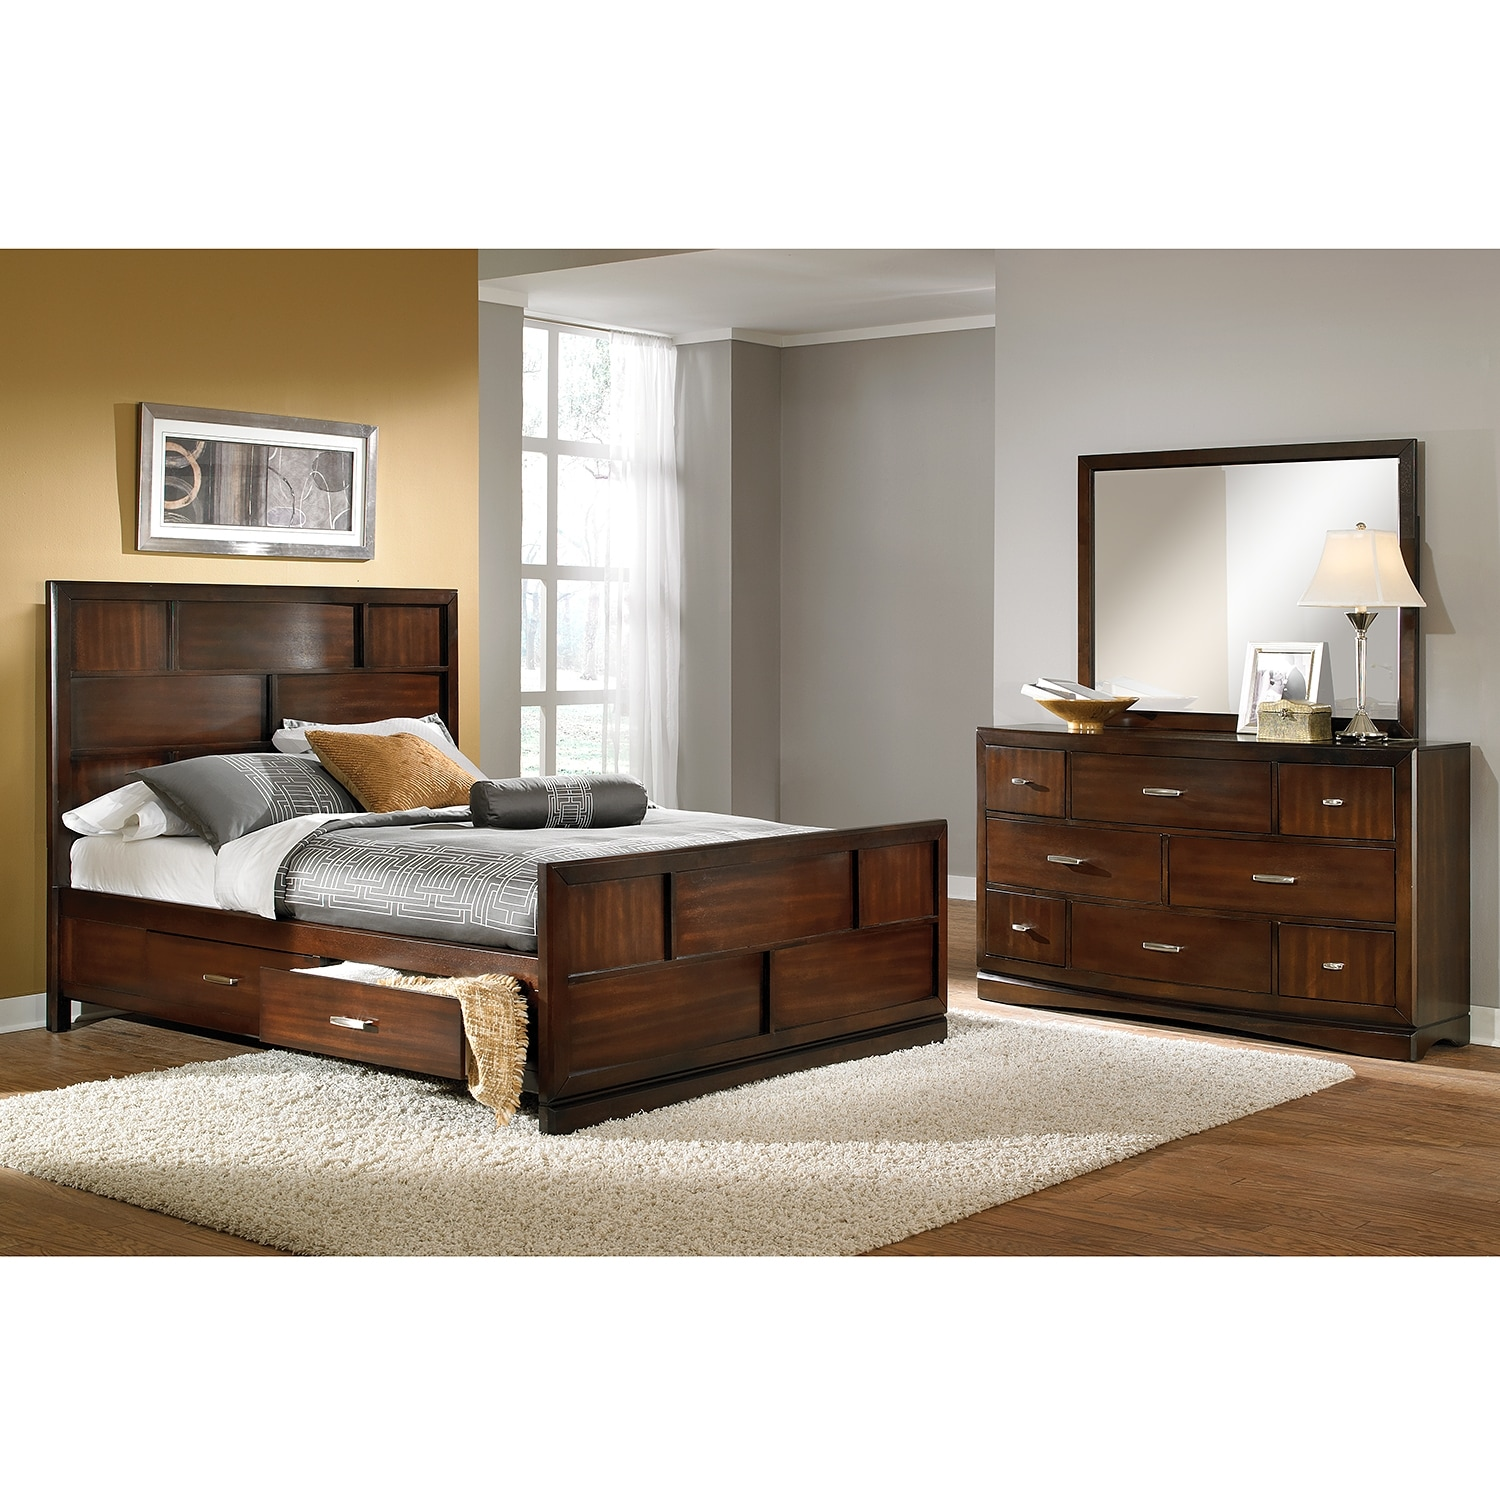 Toronto 5 Pc. Queen Storage Bedroom